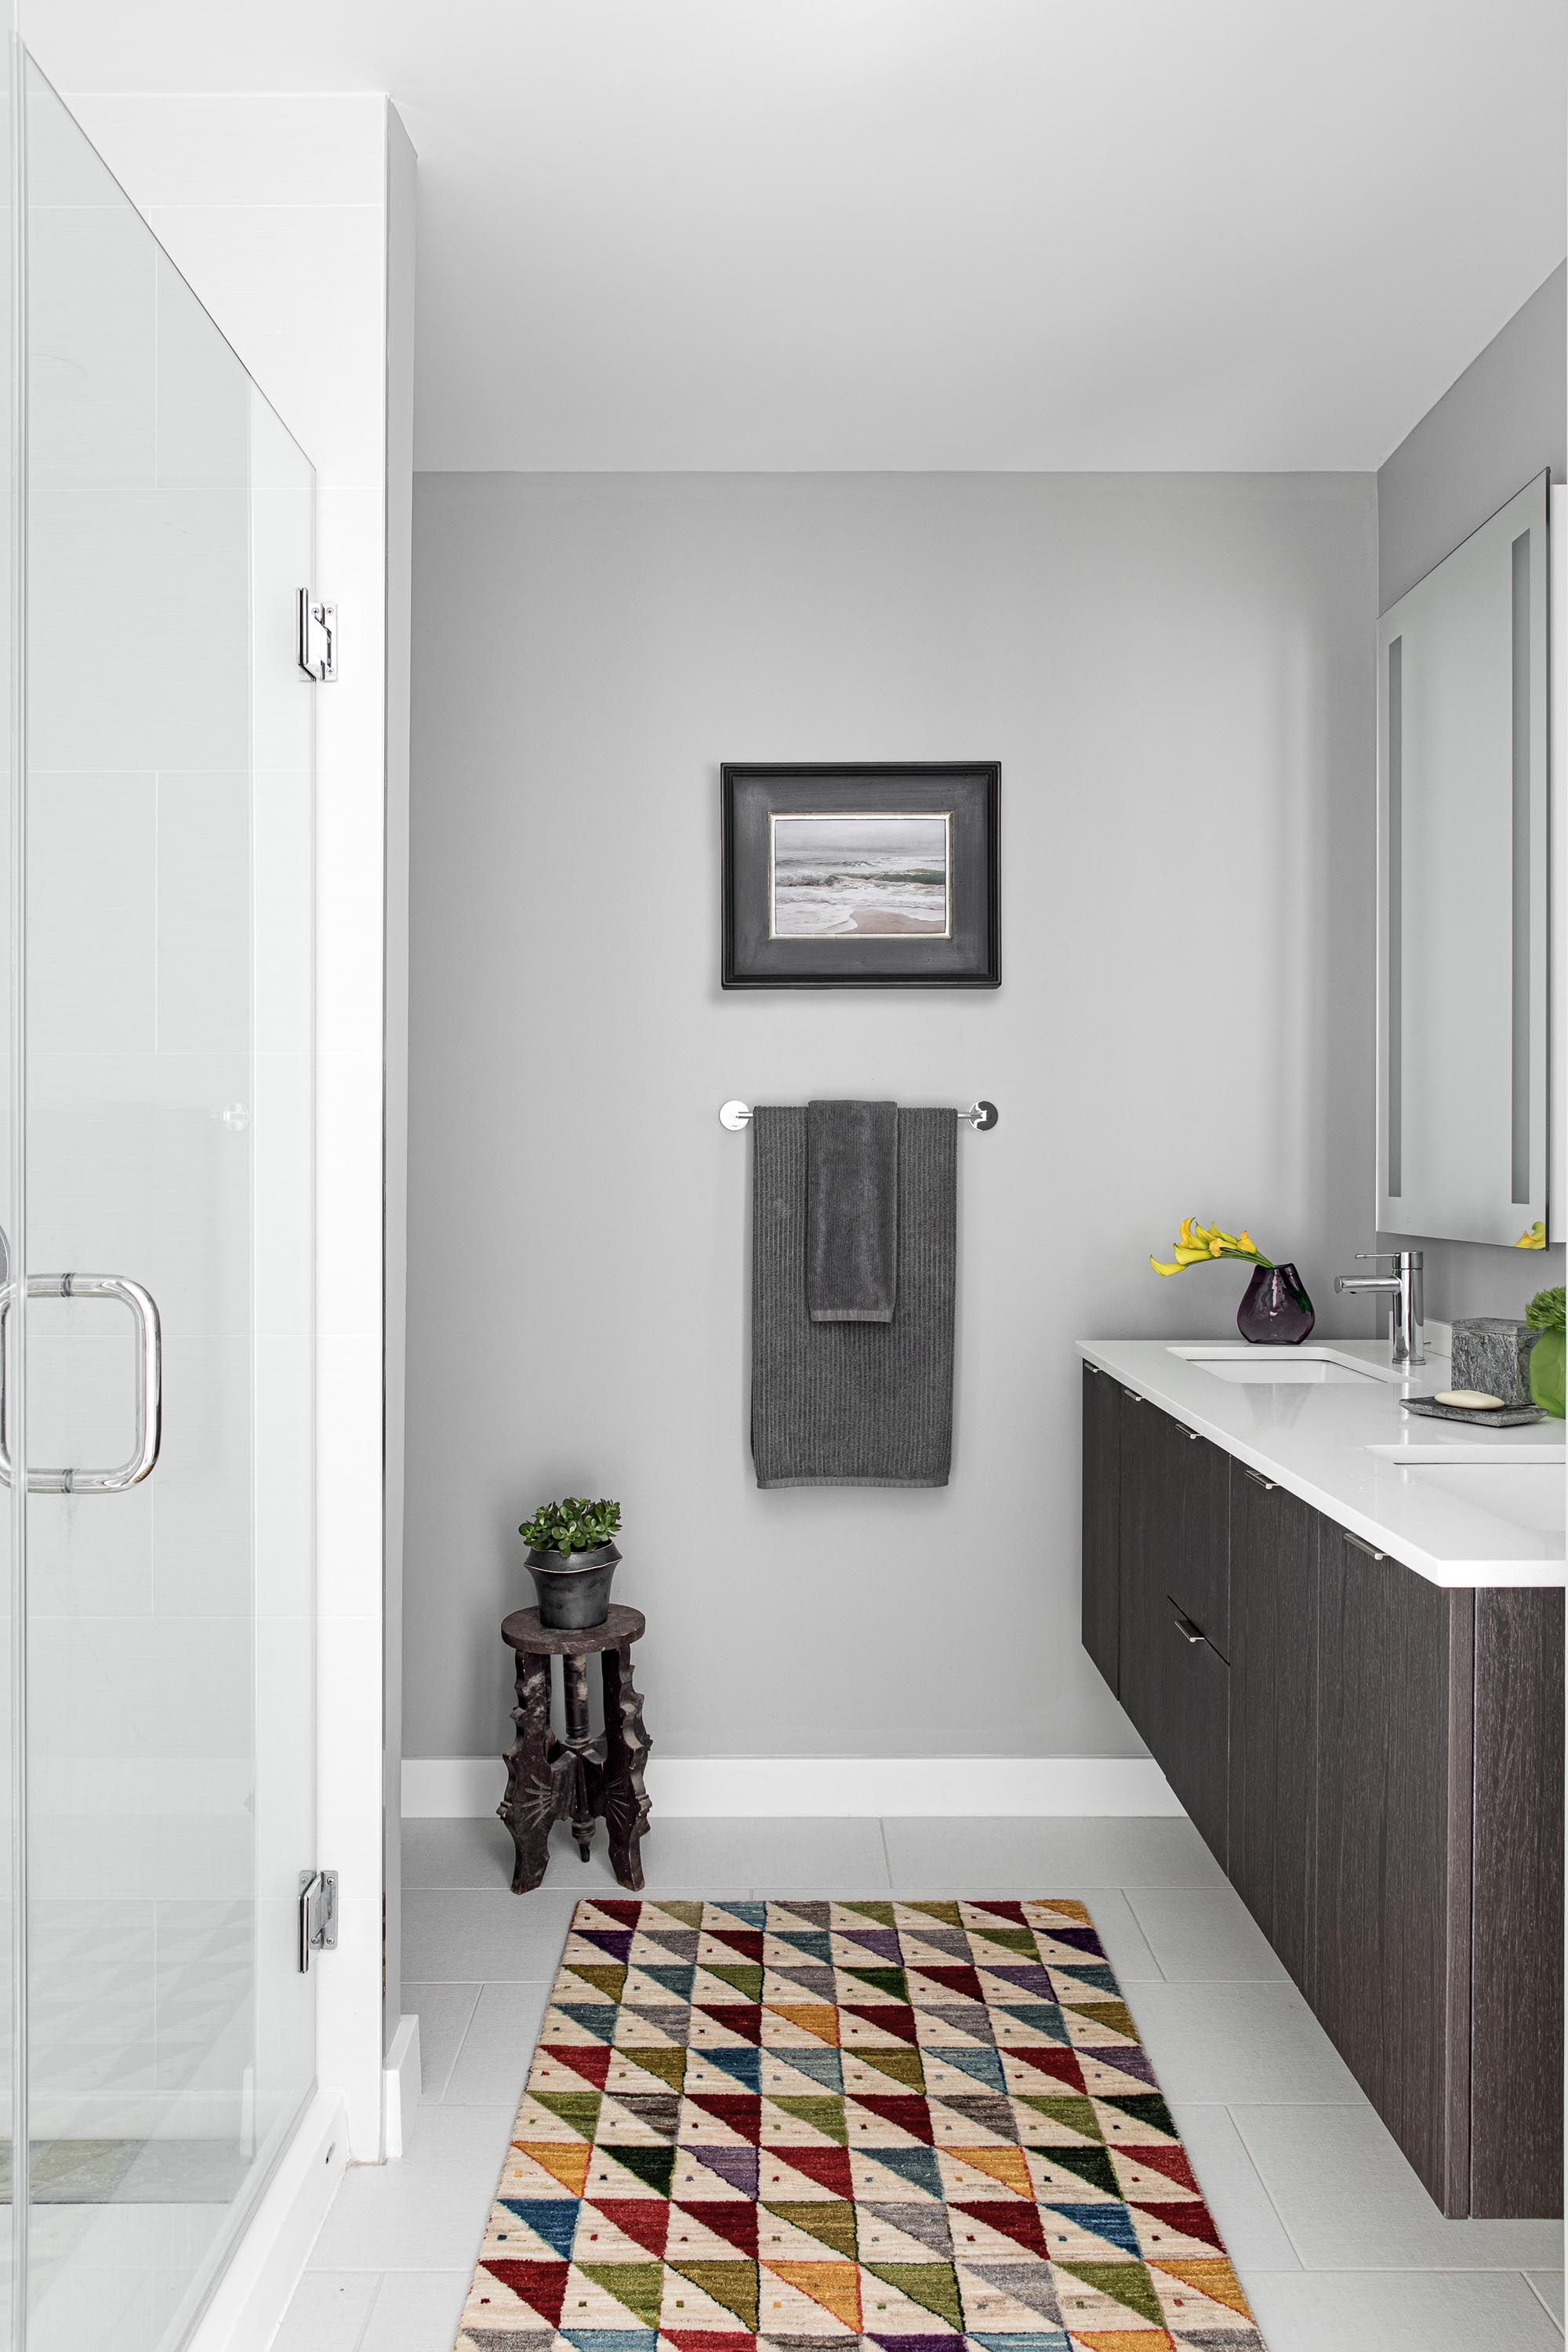 Boston bathroom interior design by Dane Austin Design